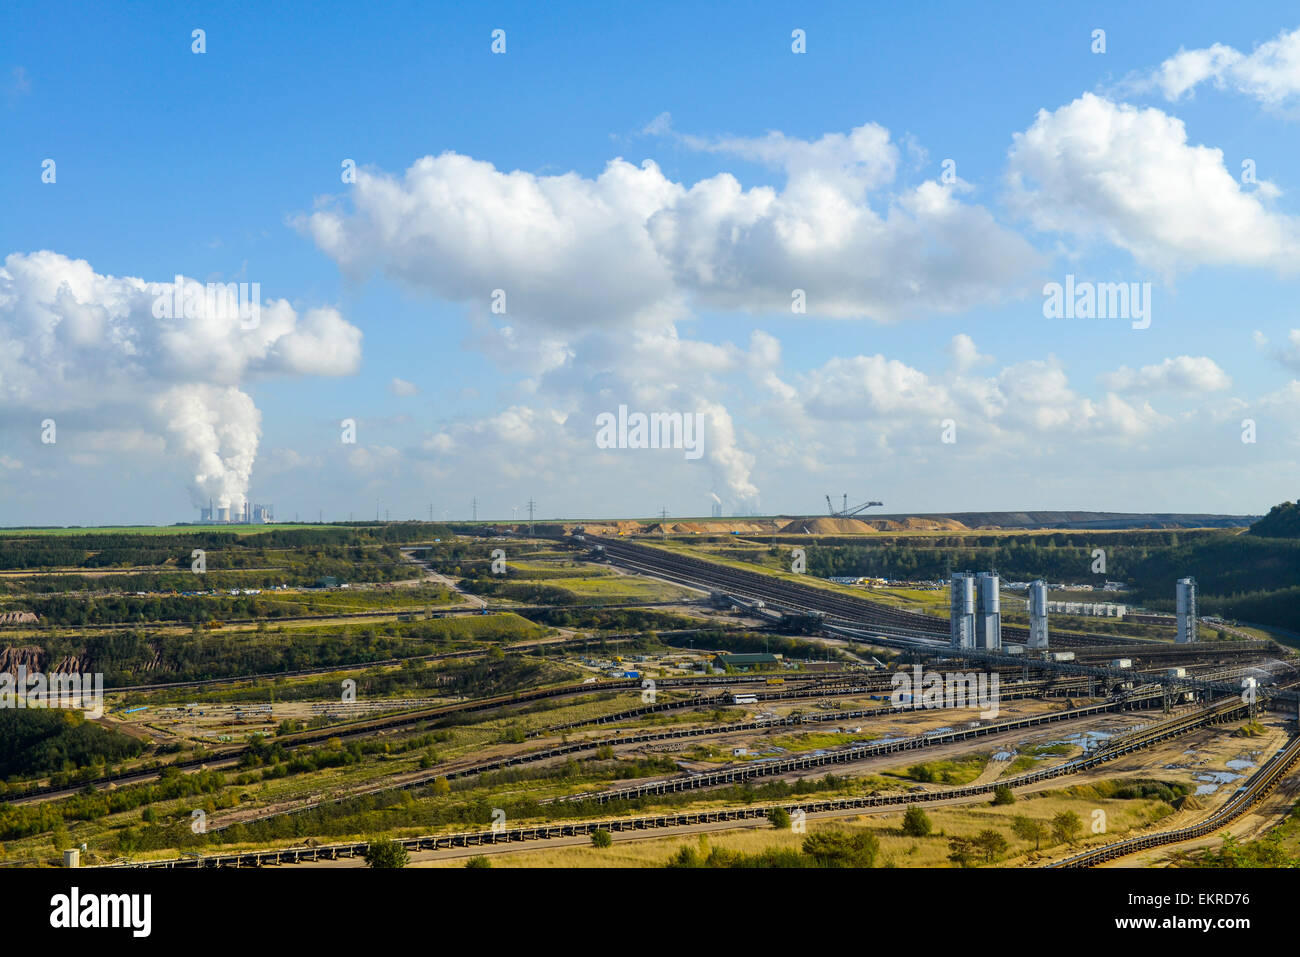 Brown coal opencast mining Garzweiler near Juechen, North Rhine-Westphalia, Germany, Europe - Stock Image